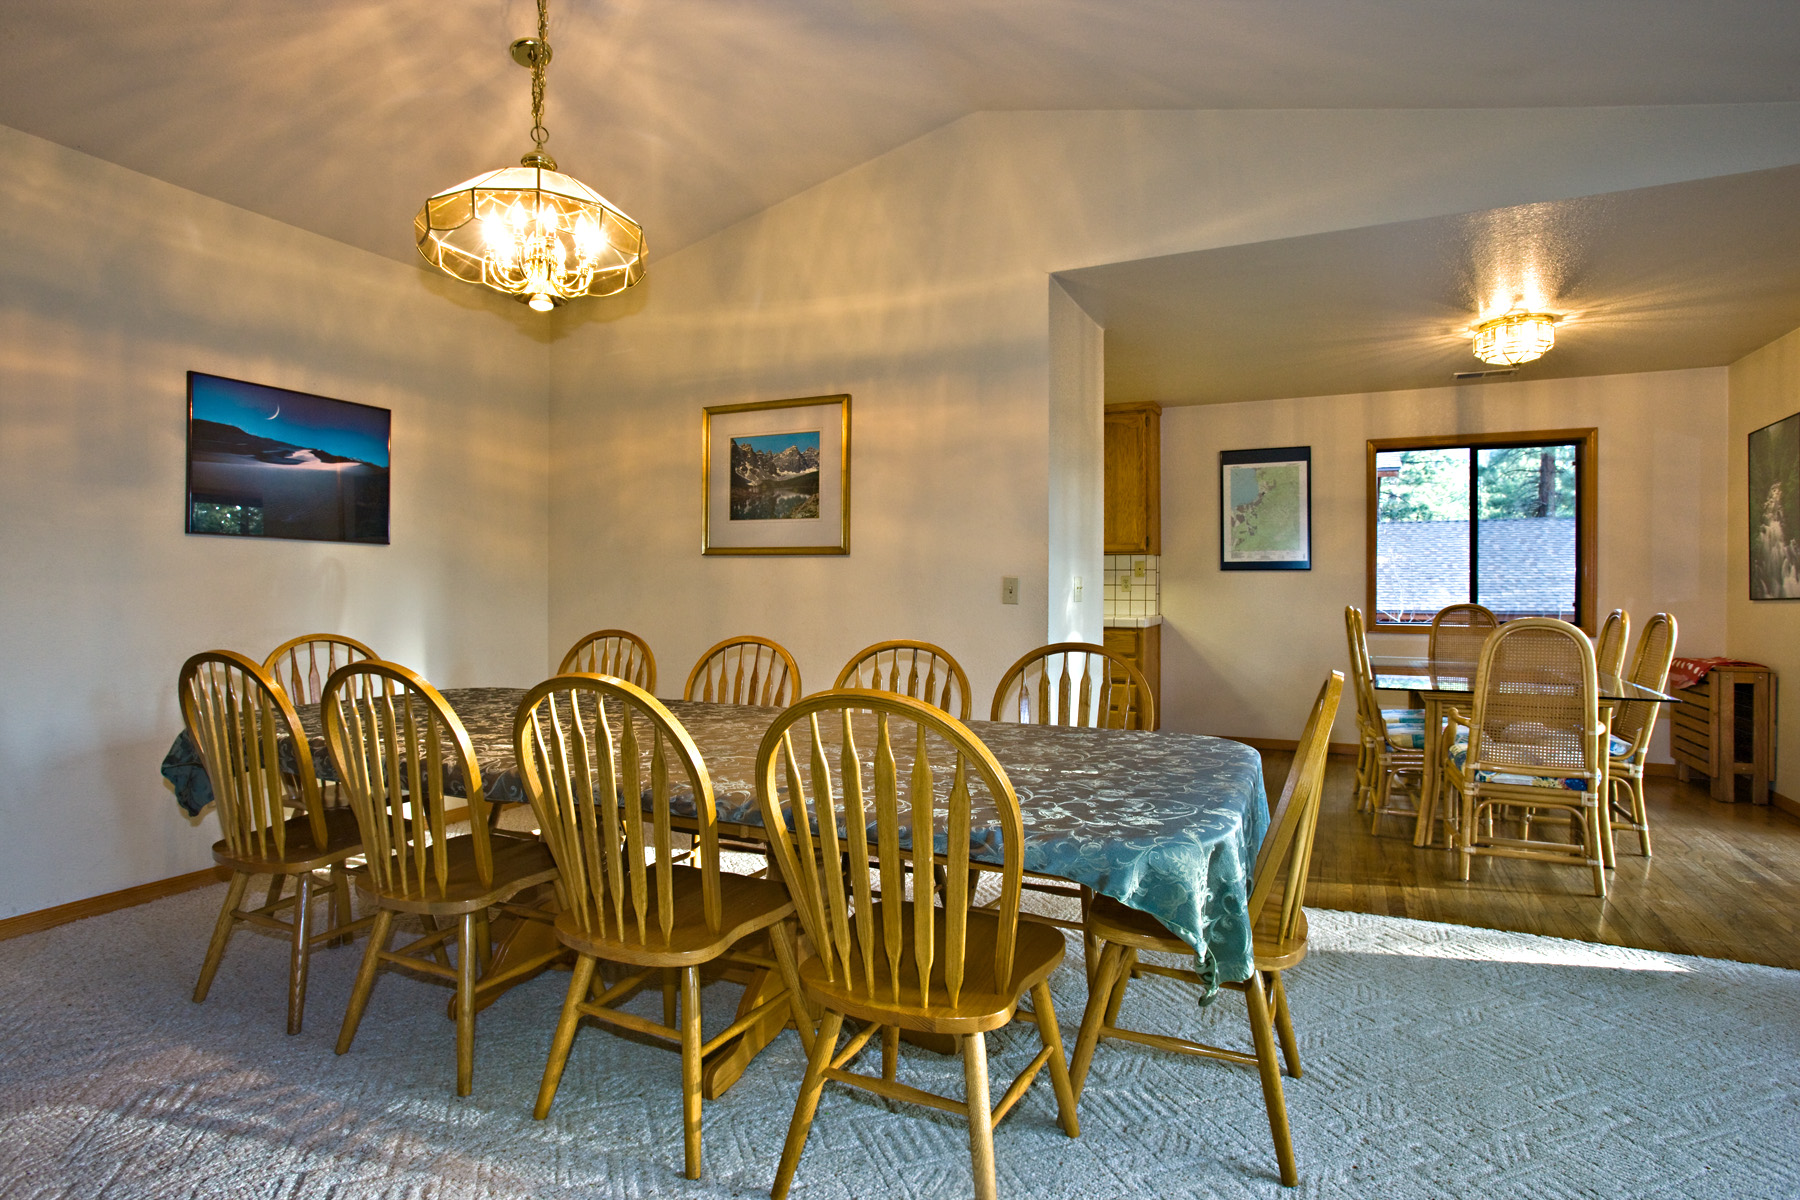 The main dining area seats 10, with overflow in the kitchen nook